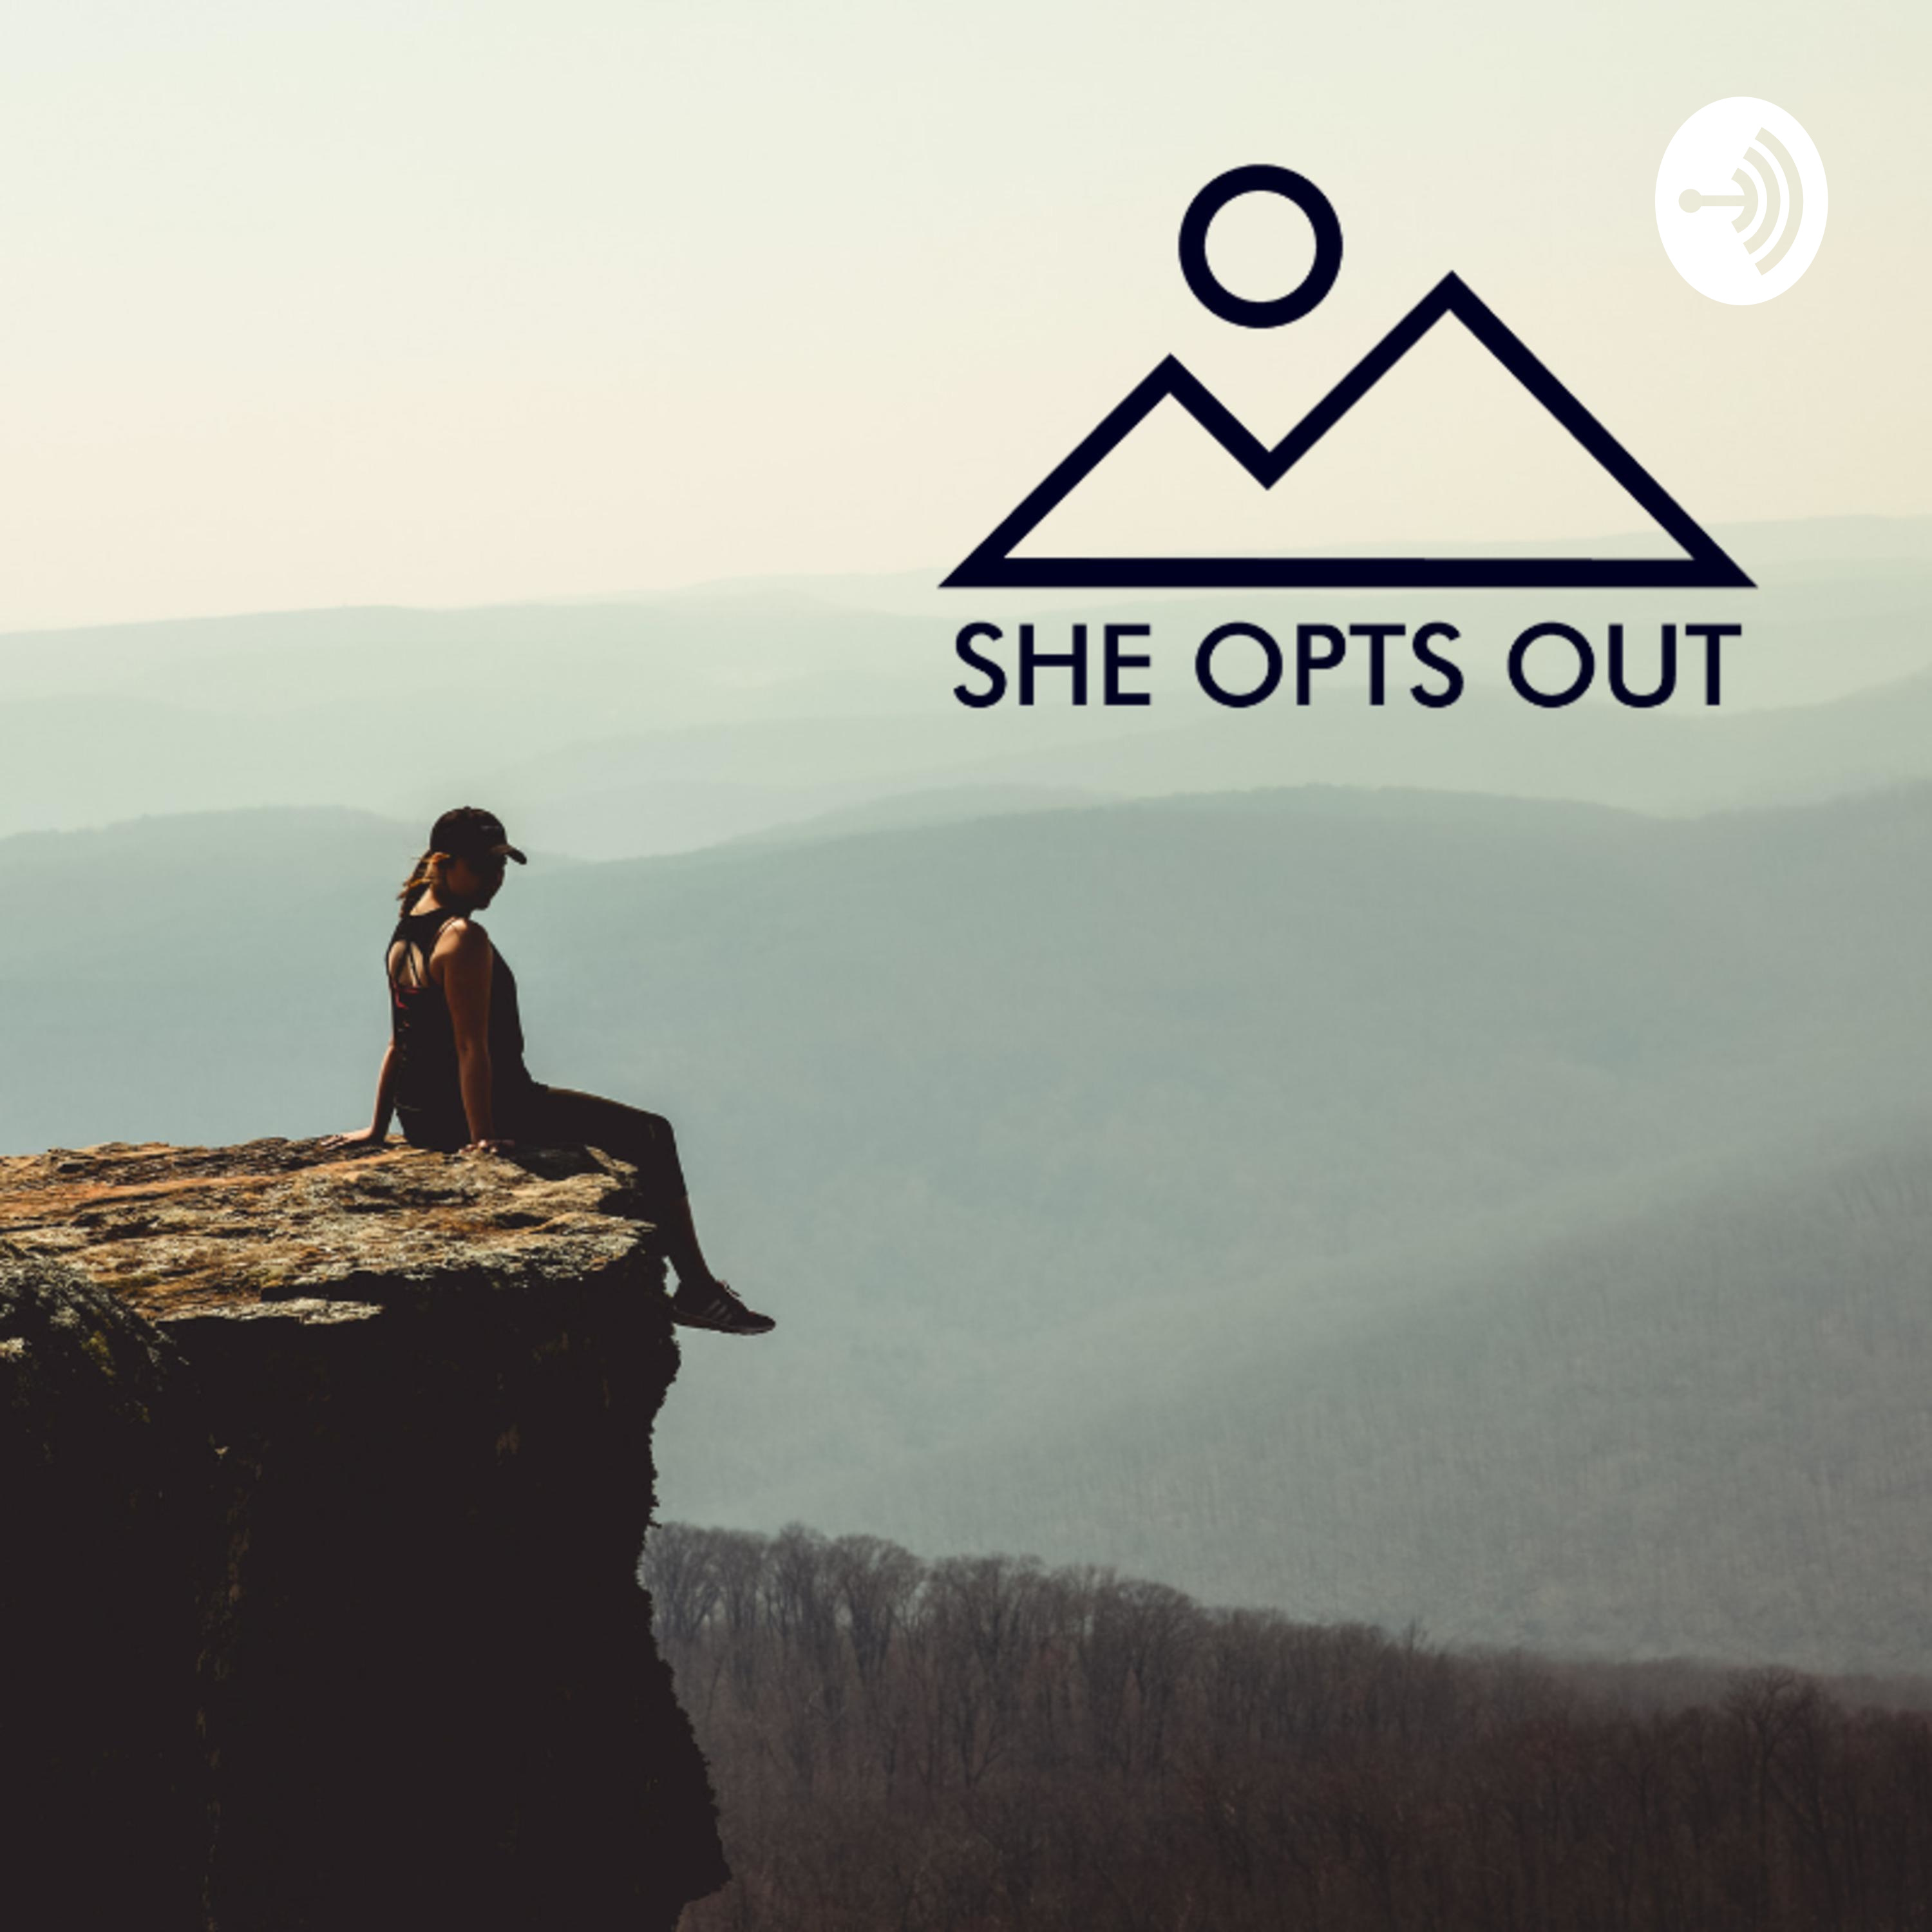 She Opts Out (Trailer)